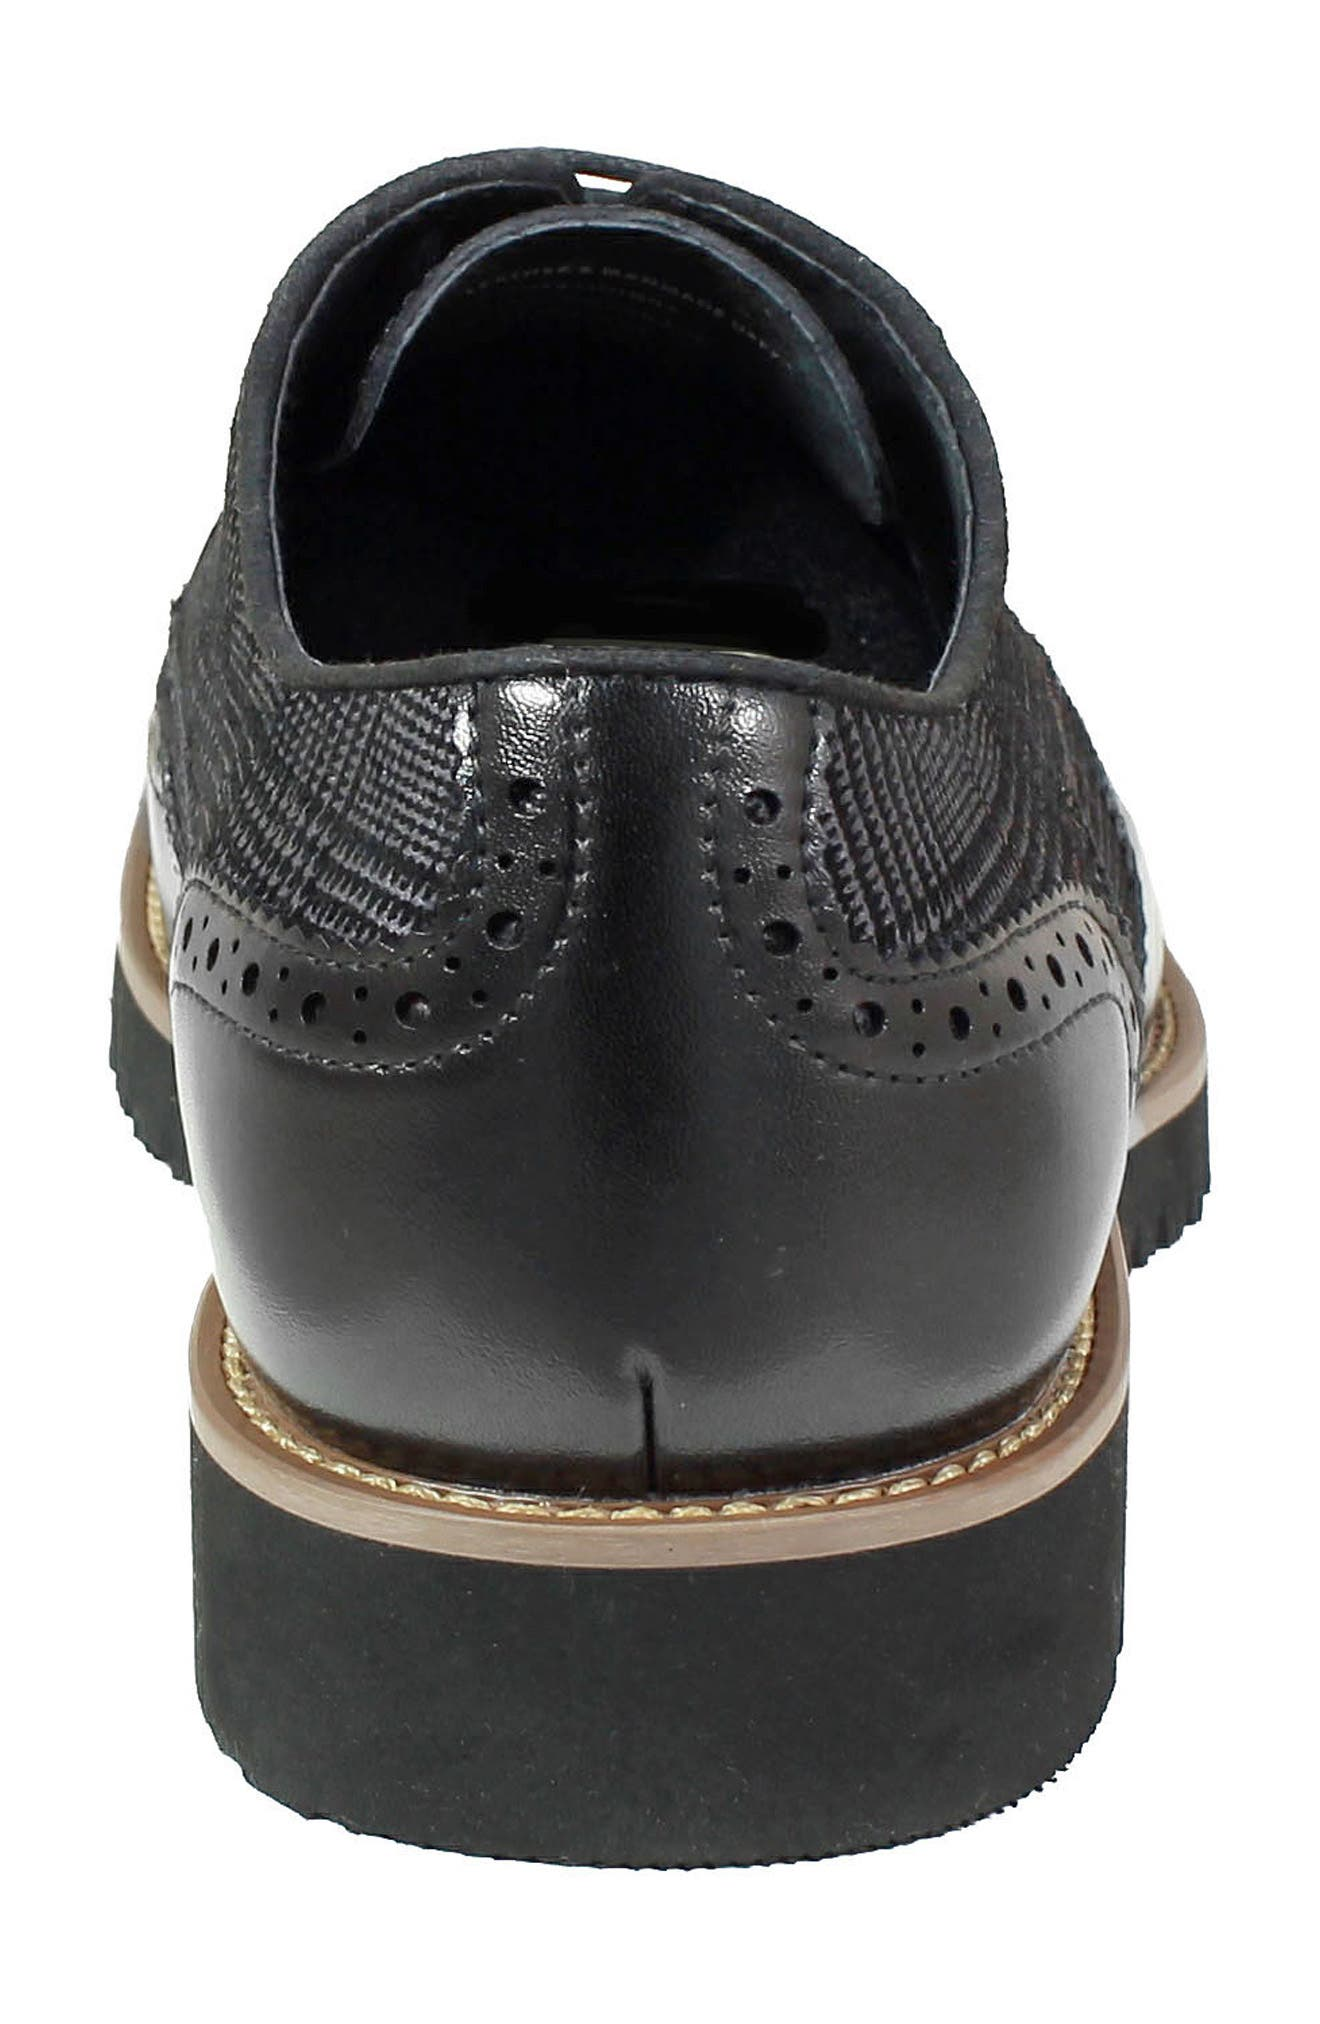 Baxley Glen Plaid Wingtip,                             Alternate thumbnail 8, color,                             BLACK LEATHER/ SUEDE